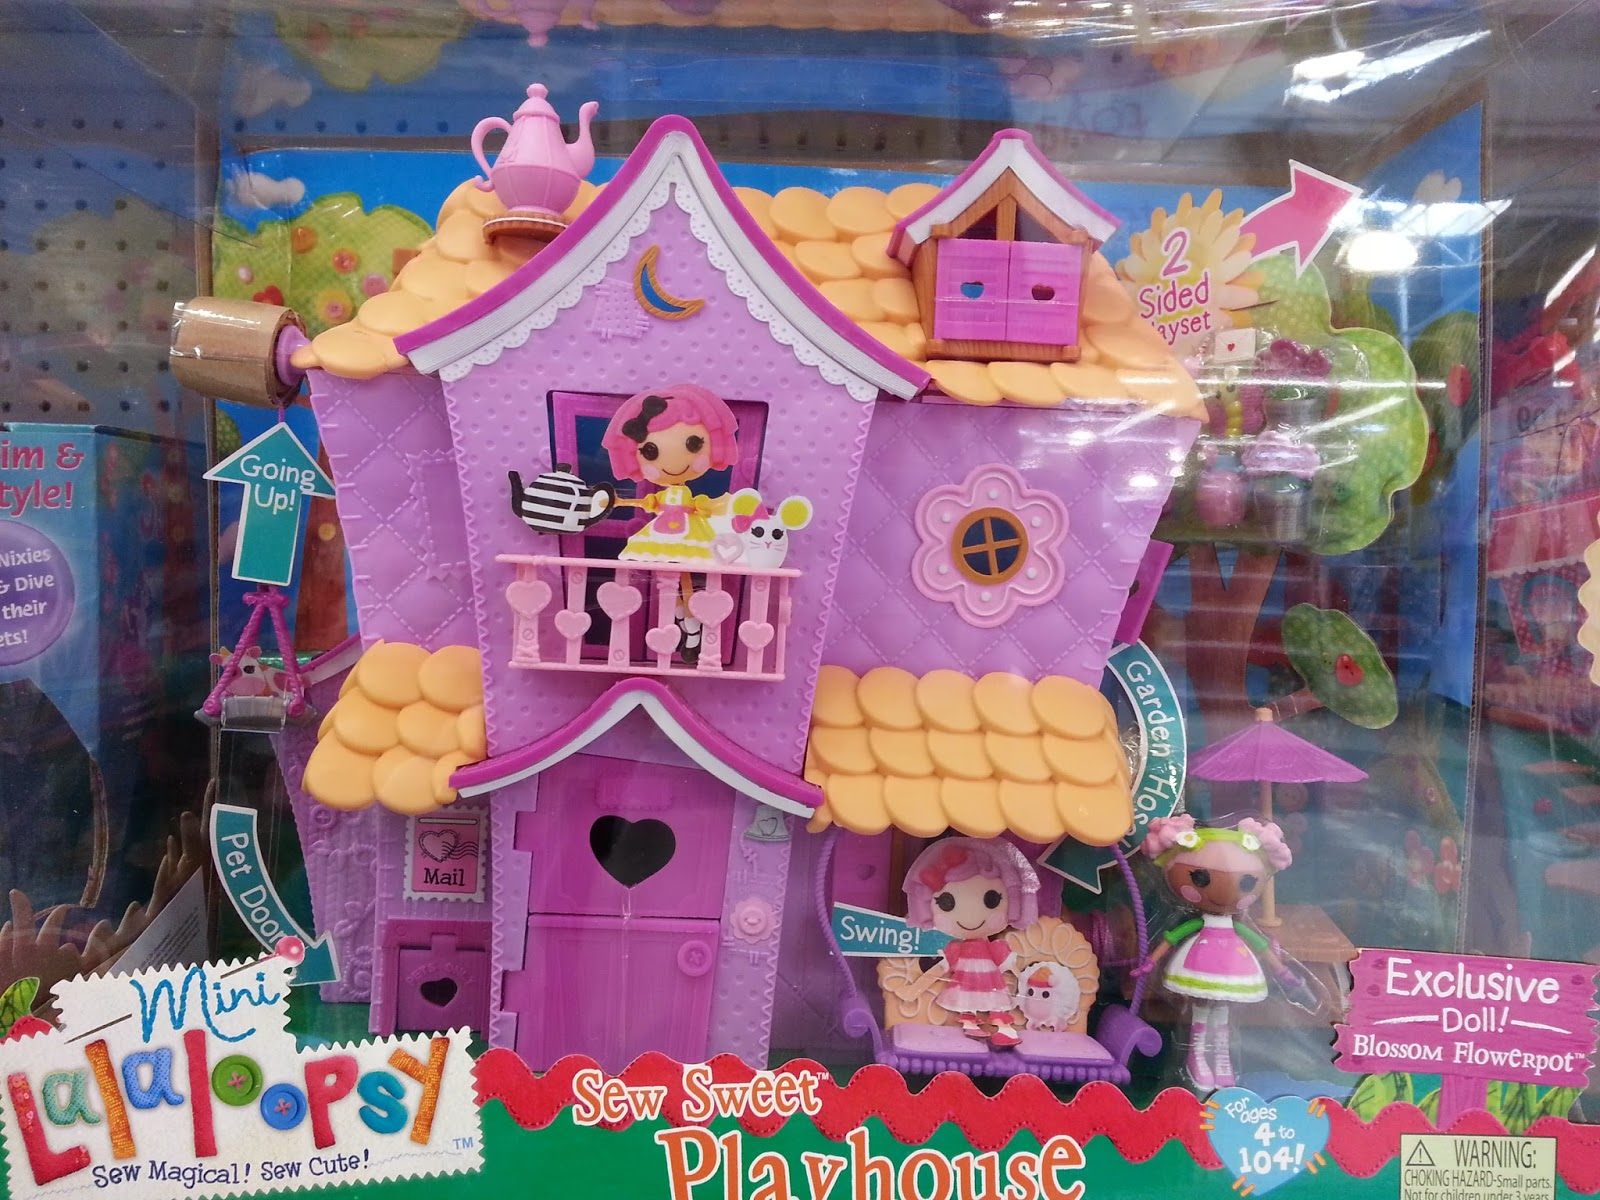 Amazing The Dollhouse Includes A Blossom Flowerpot Mini Doll (like The Previous  Dollhouse) But The Doll Is Now Wearing A Purple Apron. I Donu0027t See Any  Furniture ...